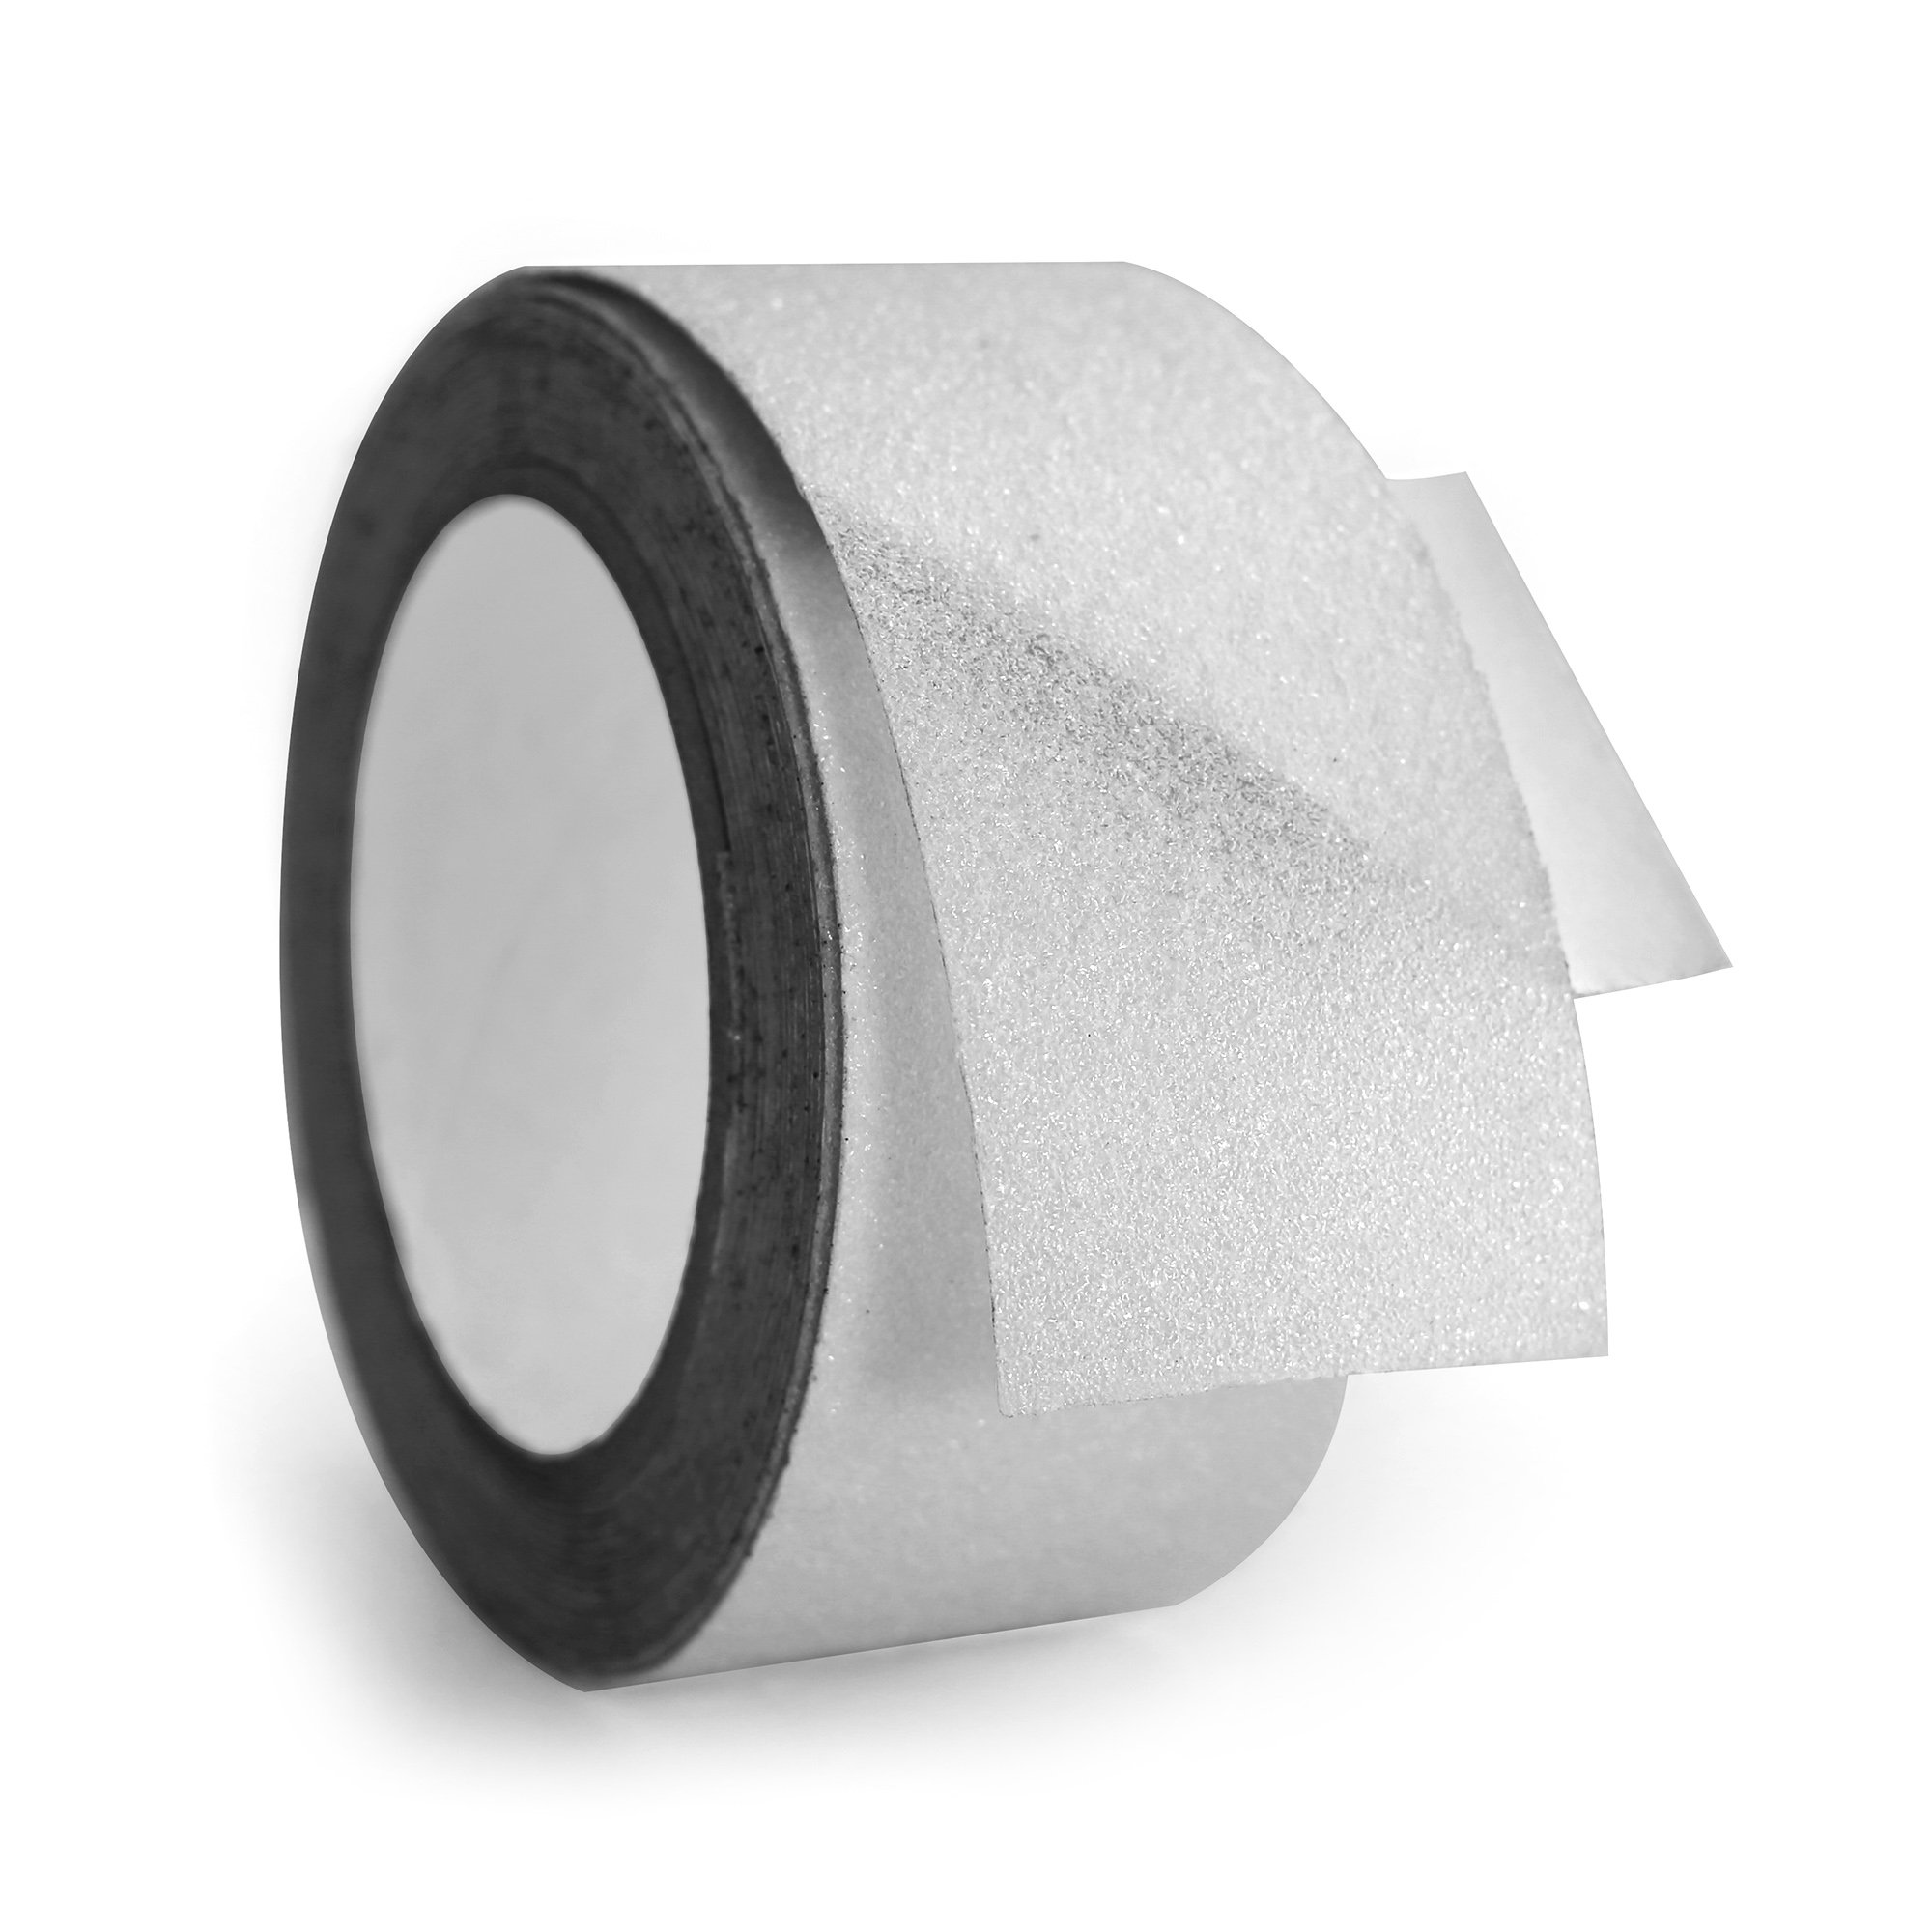 Waterproof Antislip Safety Tape - Clear - Highest Traction - Indoor or Outdoor (2'' X 15')